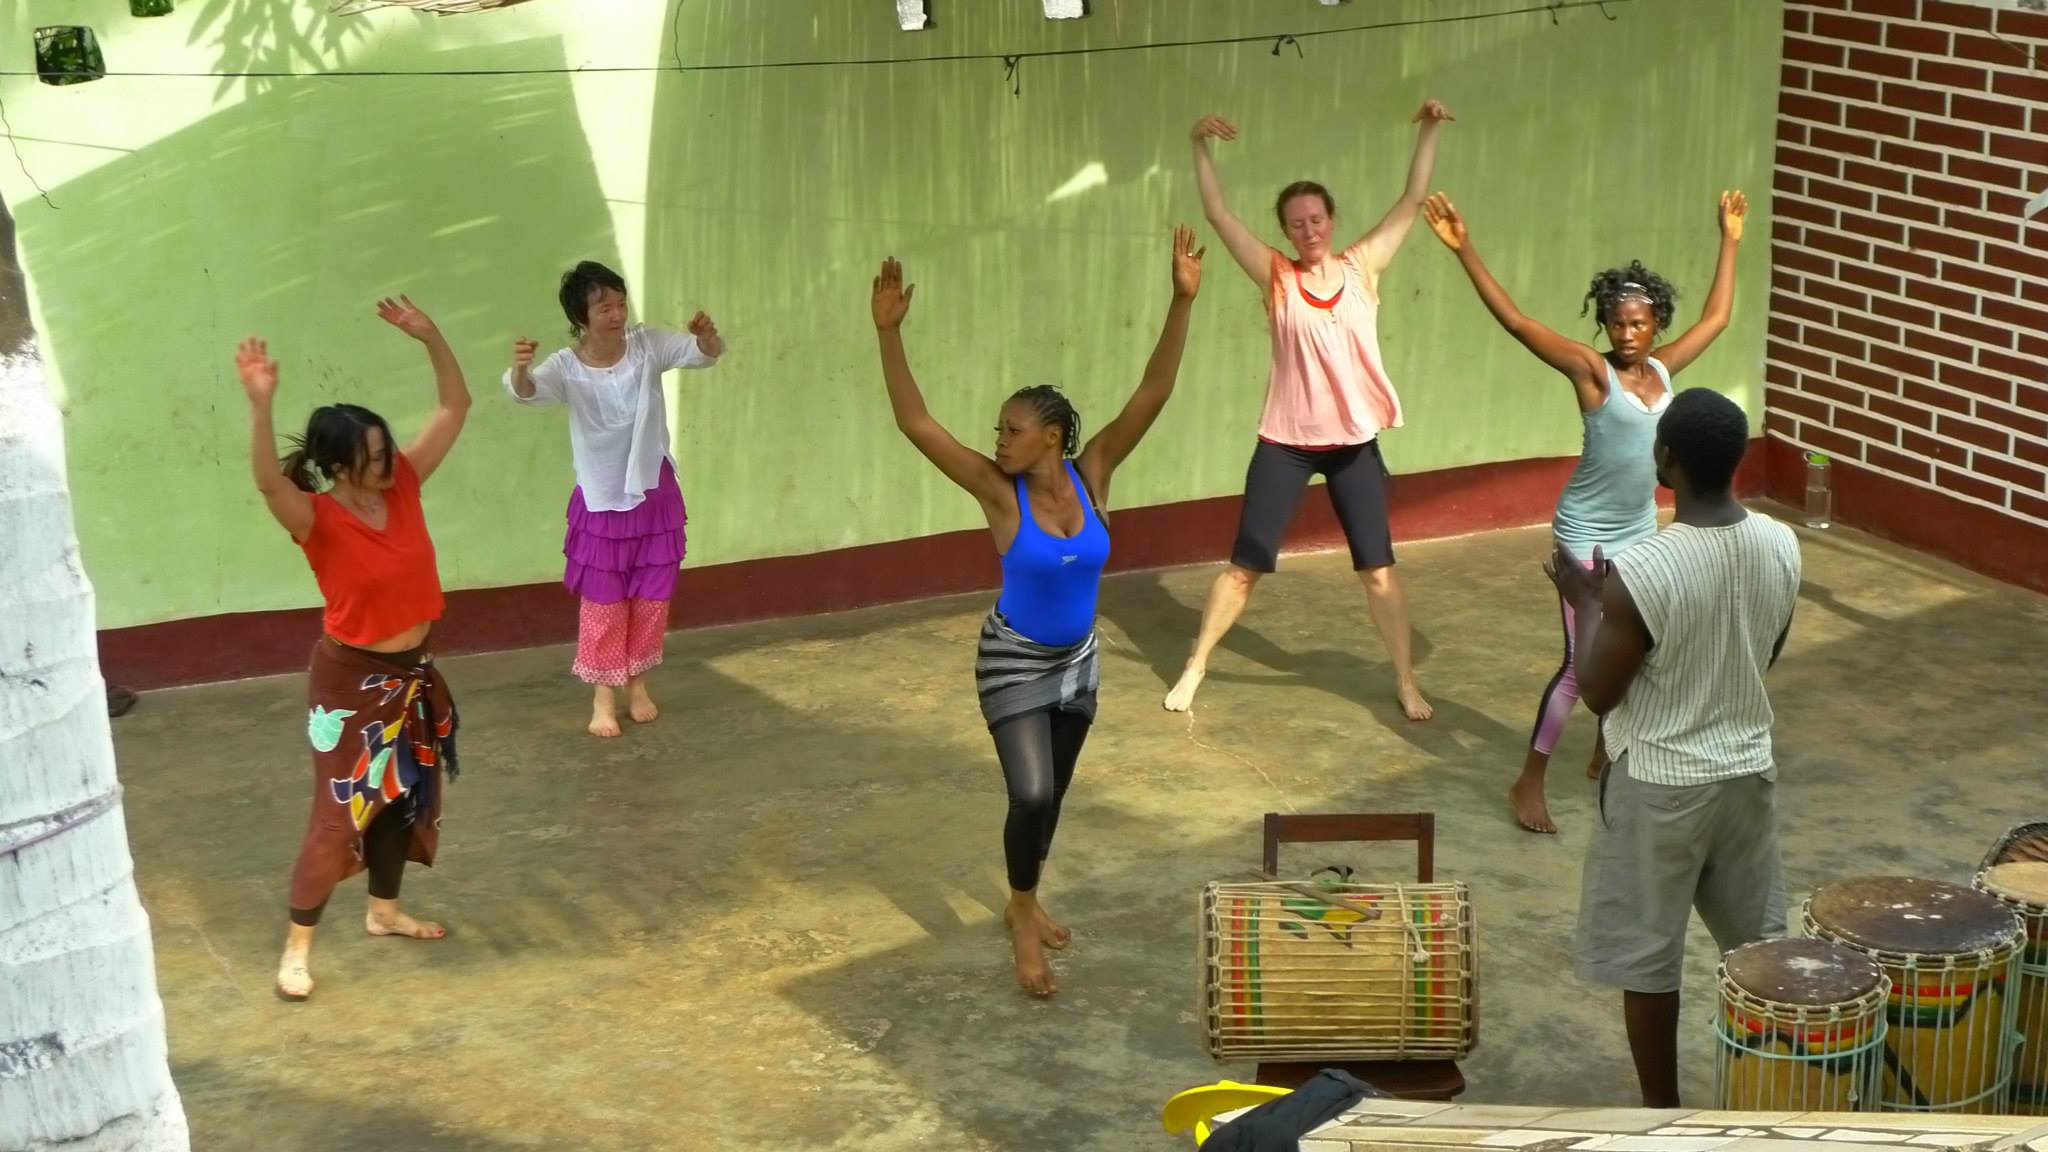 Dance students - Guinea, 2014